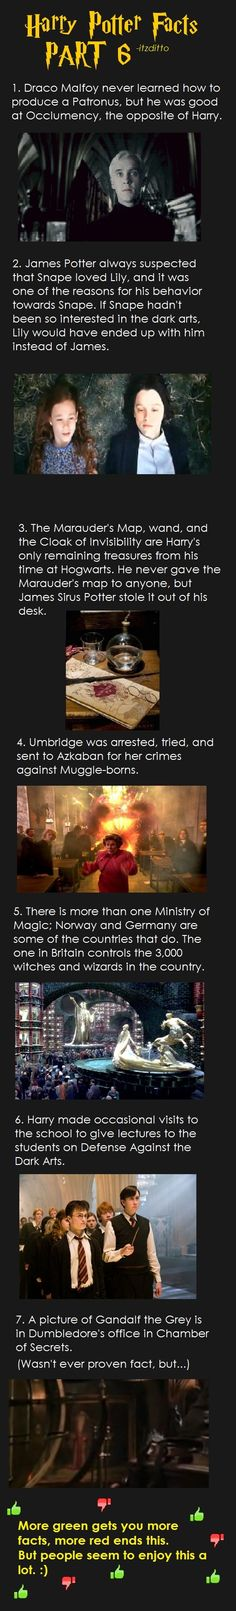 sad harry potter facts - Google Search